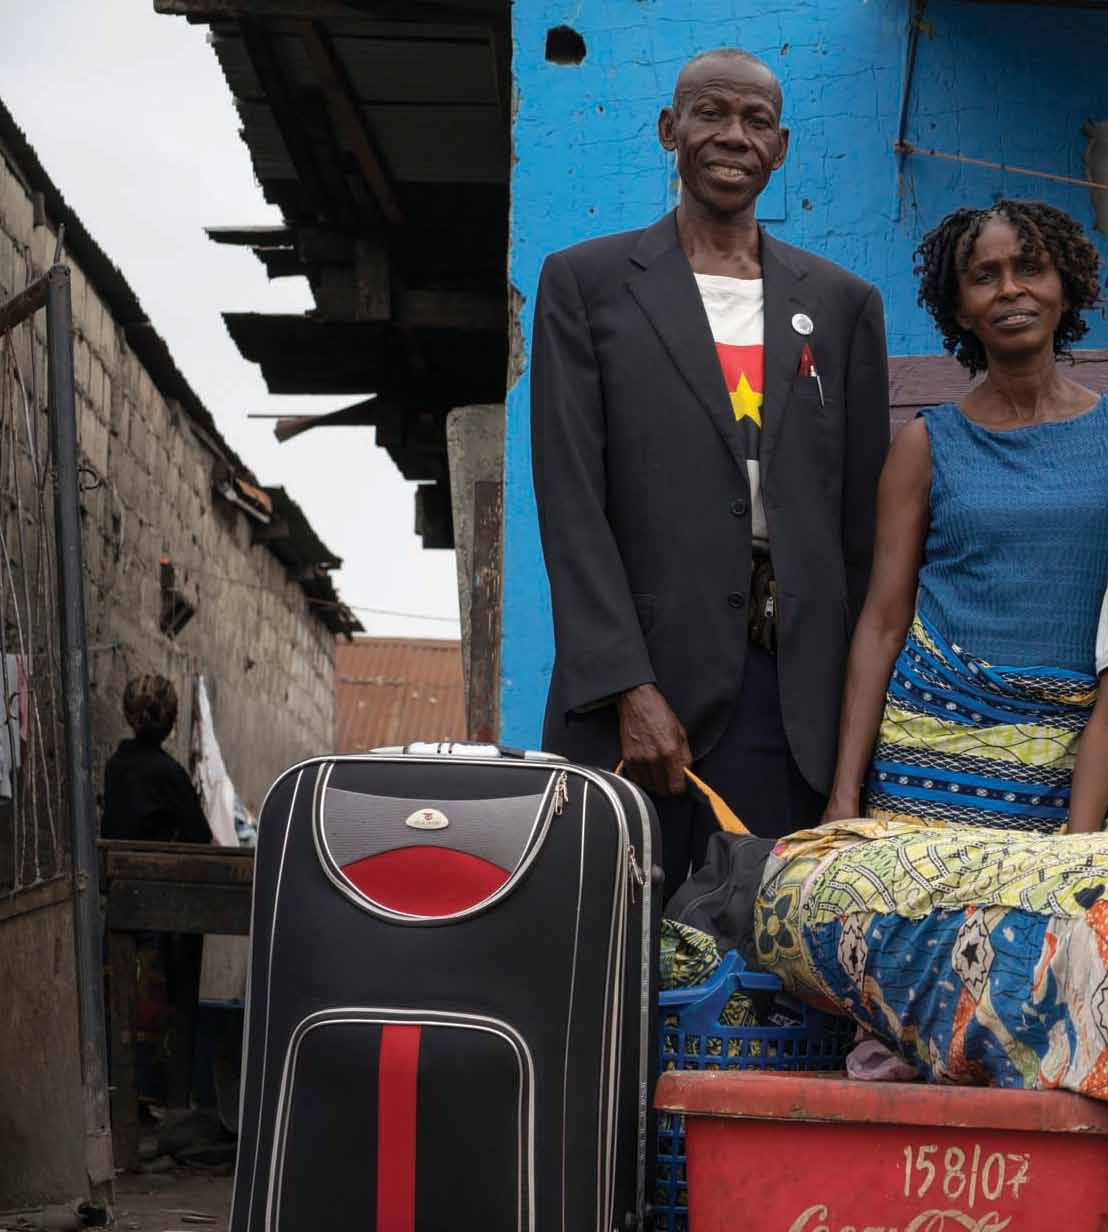 This family of former Angolan refugees pose for a portrait in Kinshasa, the Democratic Republic of the Congo, in August 2014, as they prepare to return to Angola.